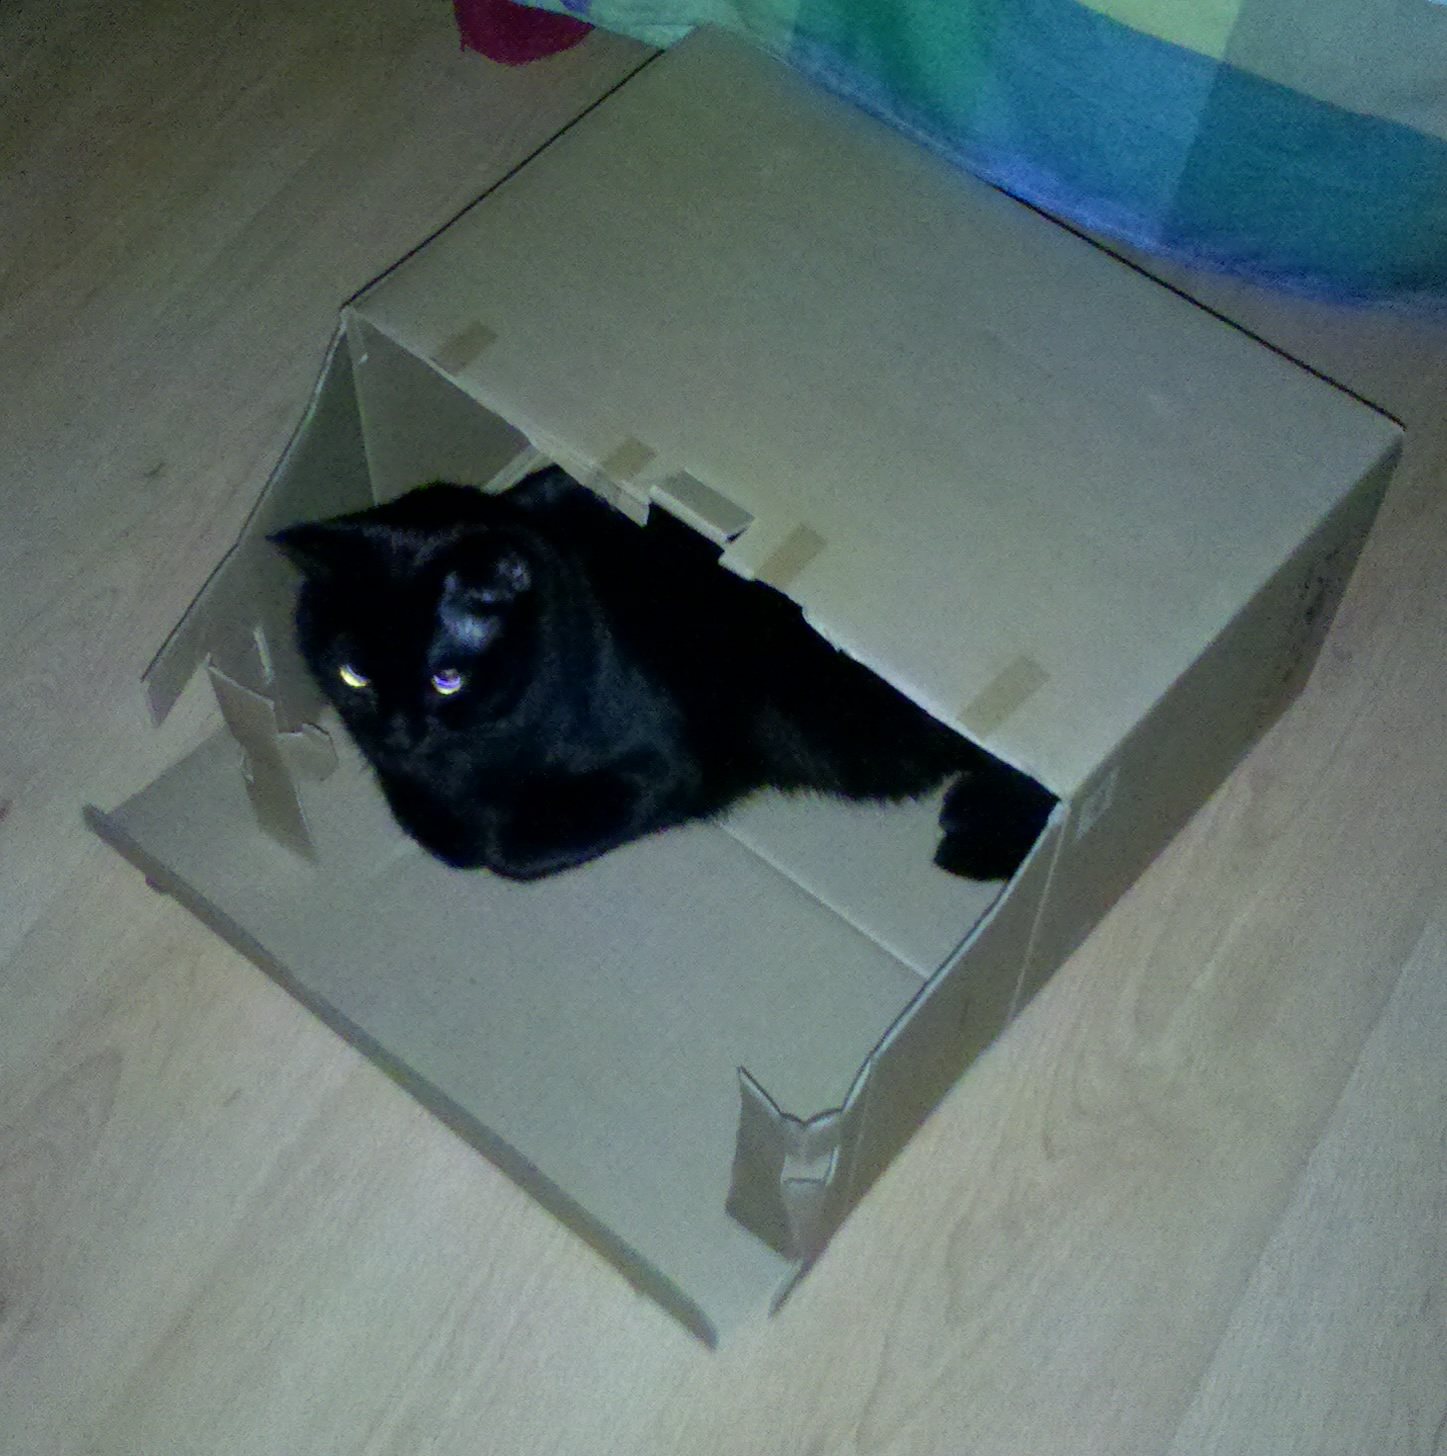 A black cat in a box